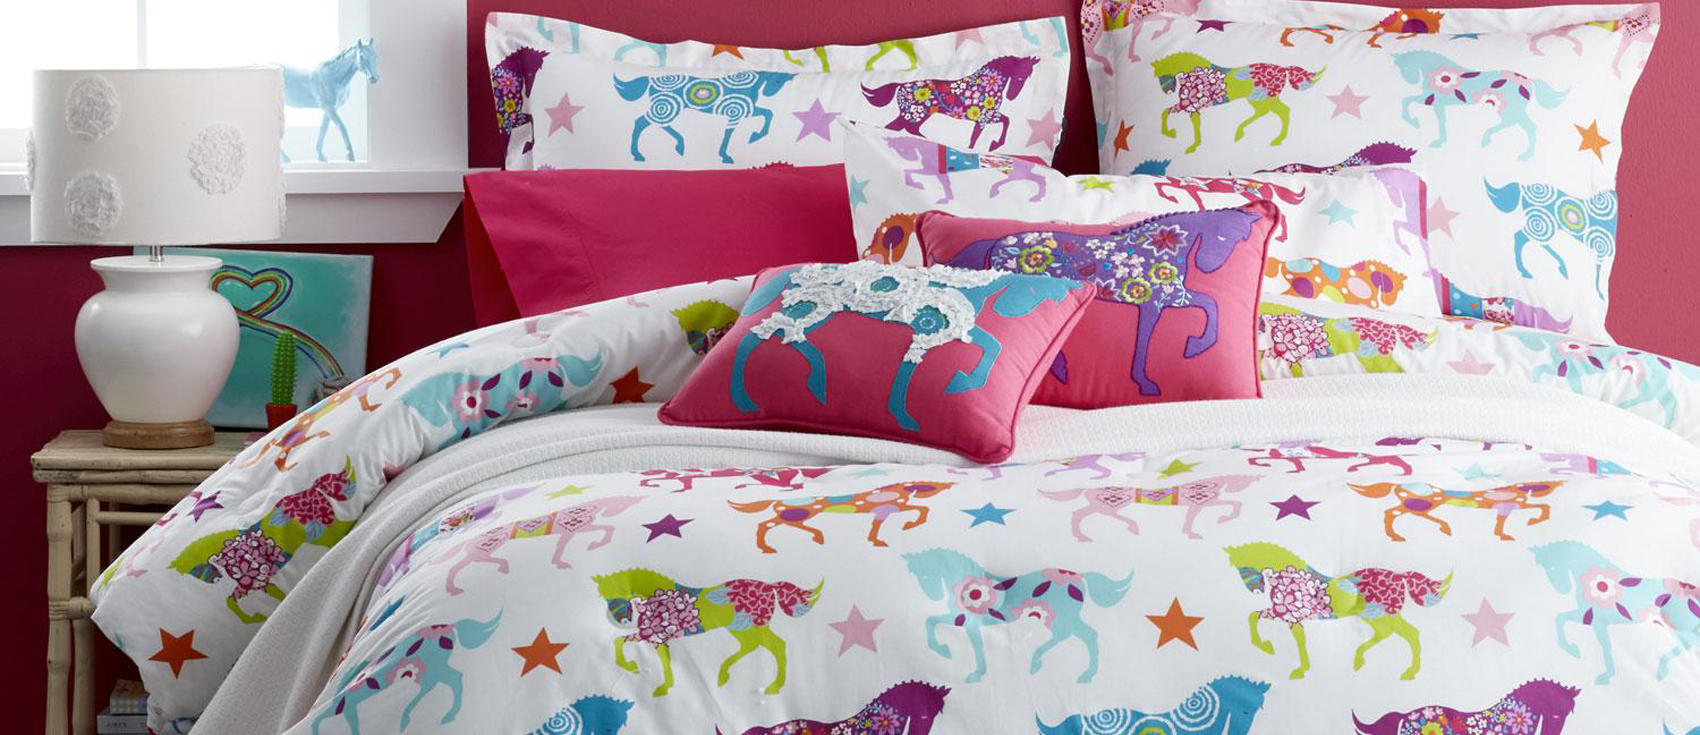 Girls Horse Bedding | How to Design a Cowgirl Theme Bedroom